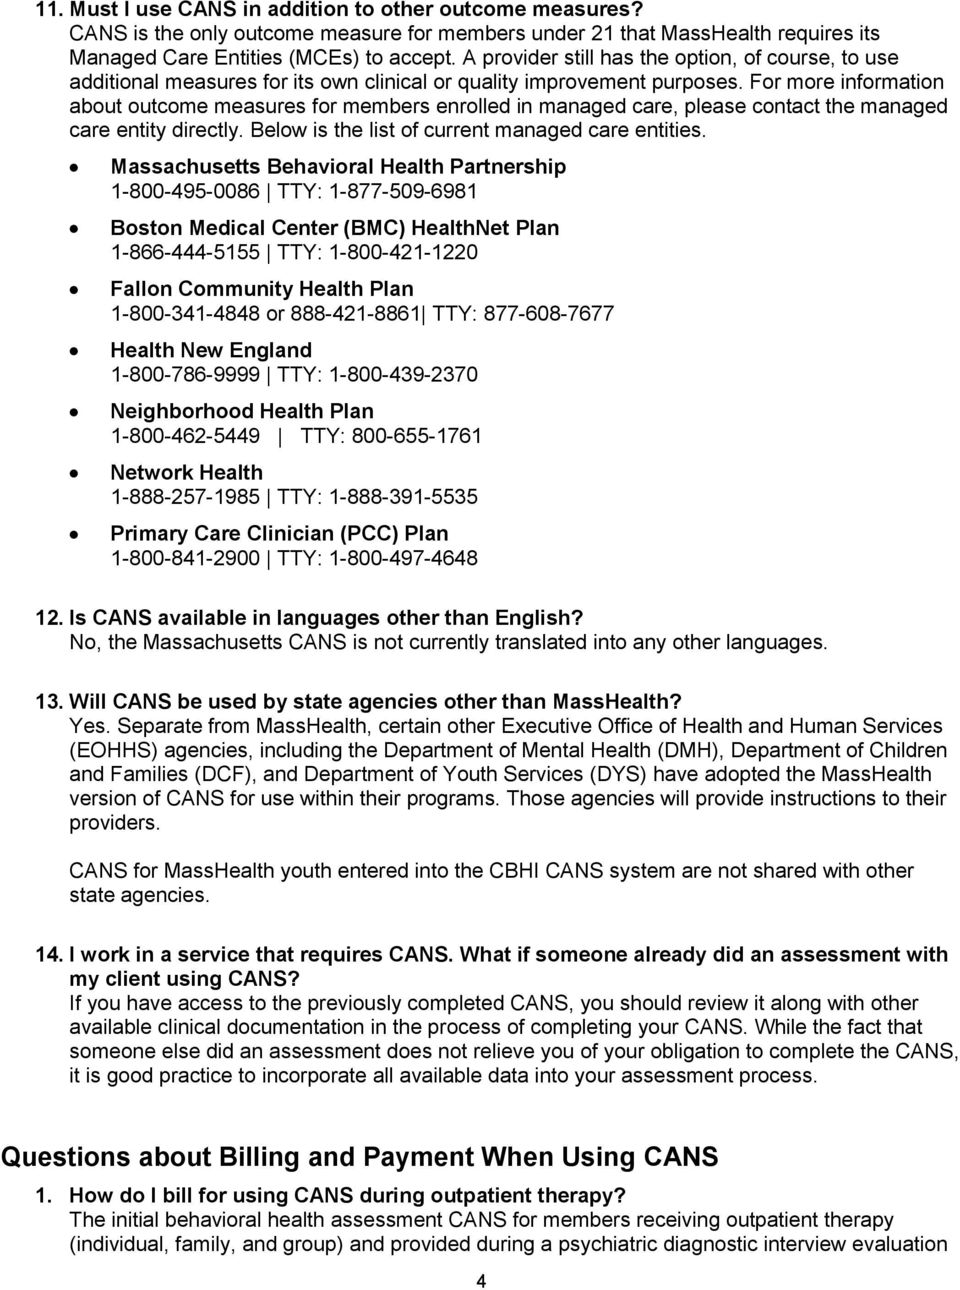 Frequently Asked Questions About The Cans Requirements And Billing Pdf